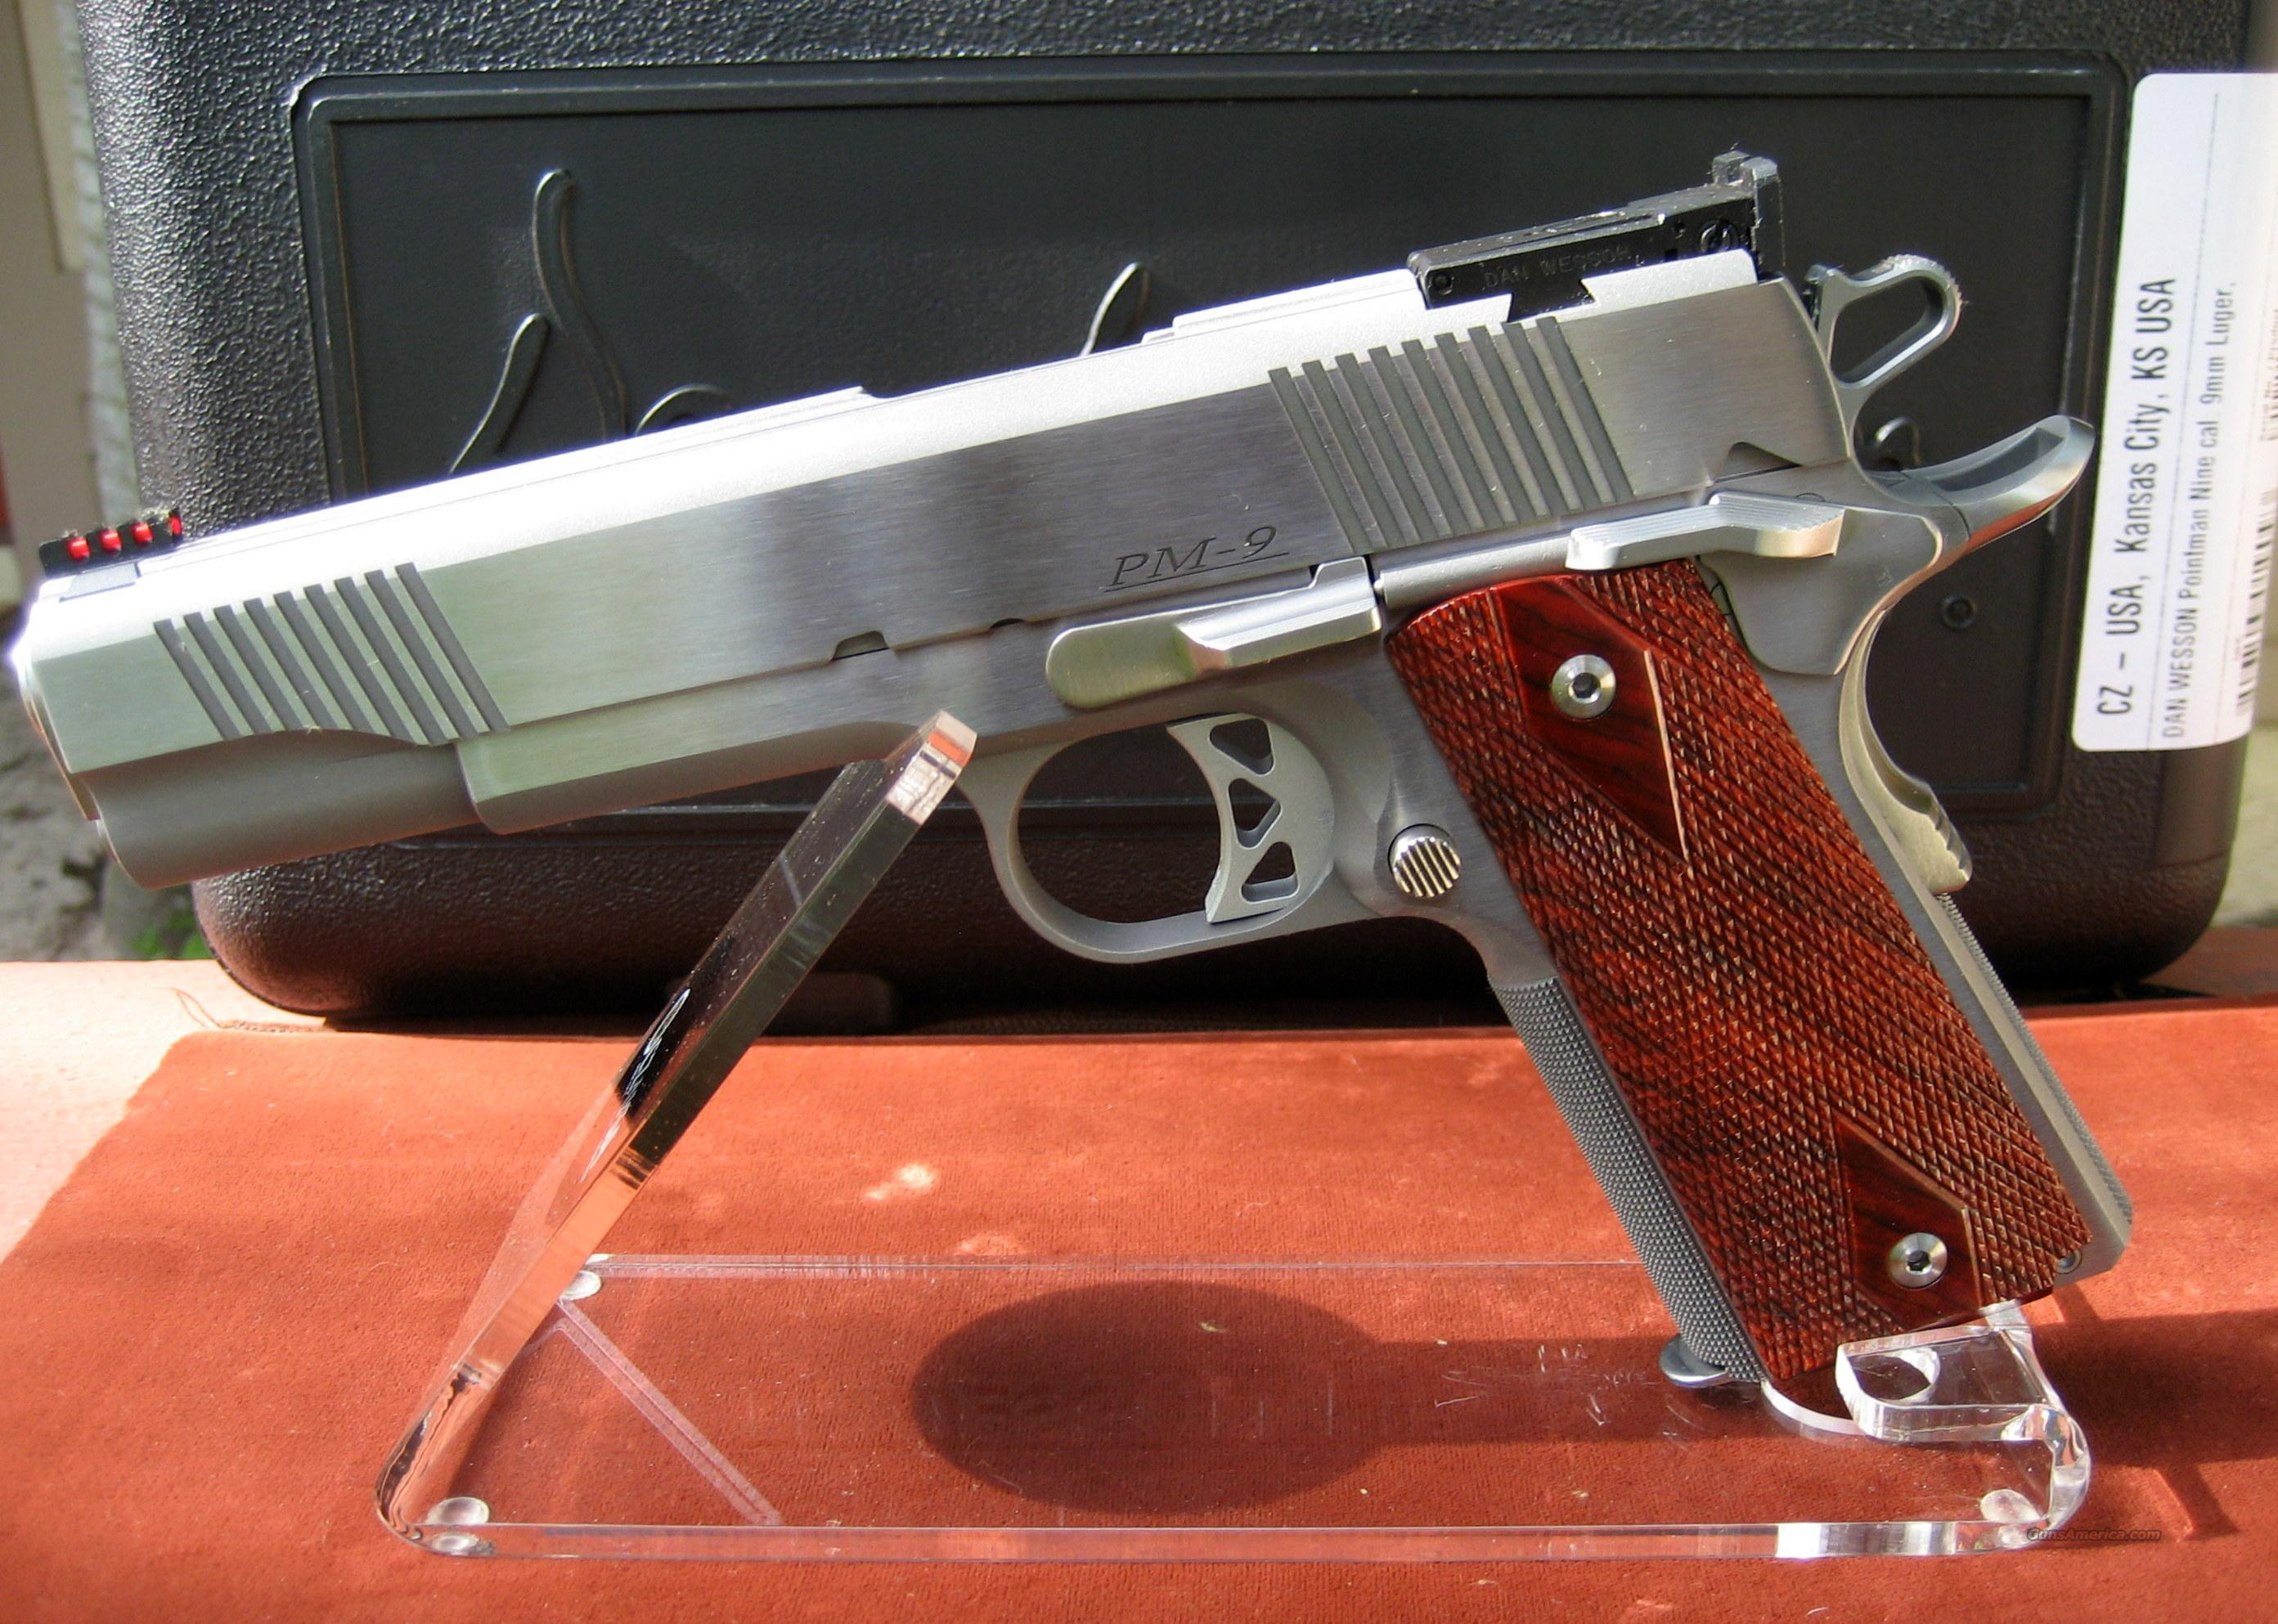 DAN WESSON LIMITED PRODUCTION POINTMAN NINE IN 9MM   Guns > Pistols > Dan Wesson Pistols/Revolvers > 1911 Style